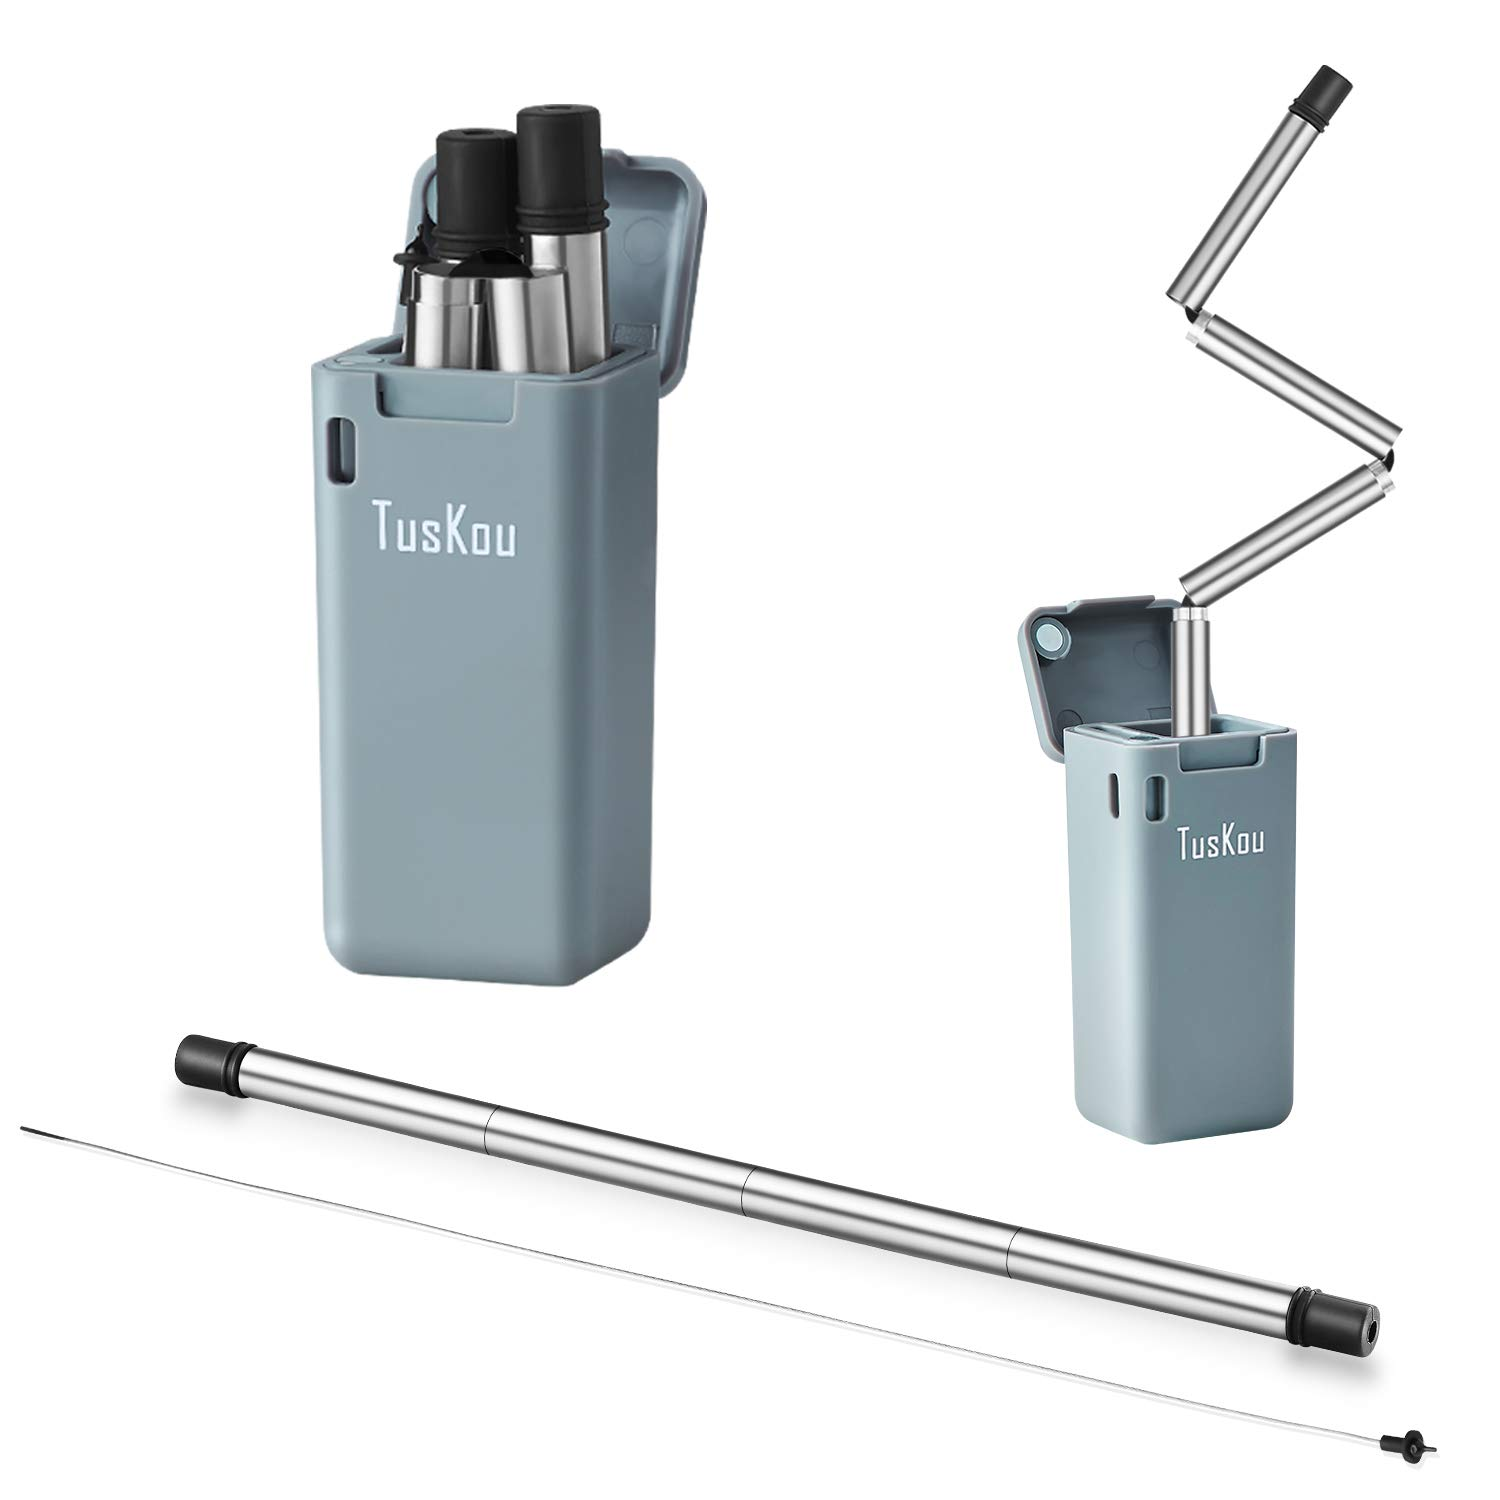 Folding Drinking Straw Stainless Steel, TusKou Final Collapsible Reusable Stainless Straw Food-Grade Drinking Straws Portable with Hard Case Cleaning Brush (Gray, 1)